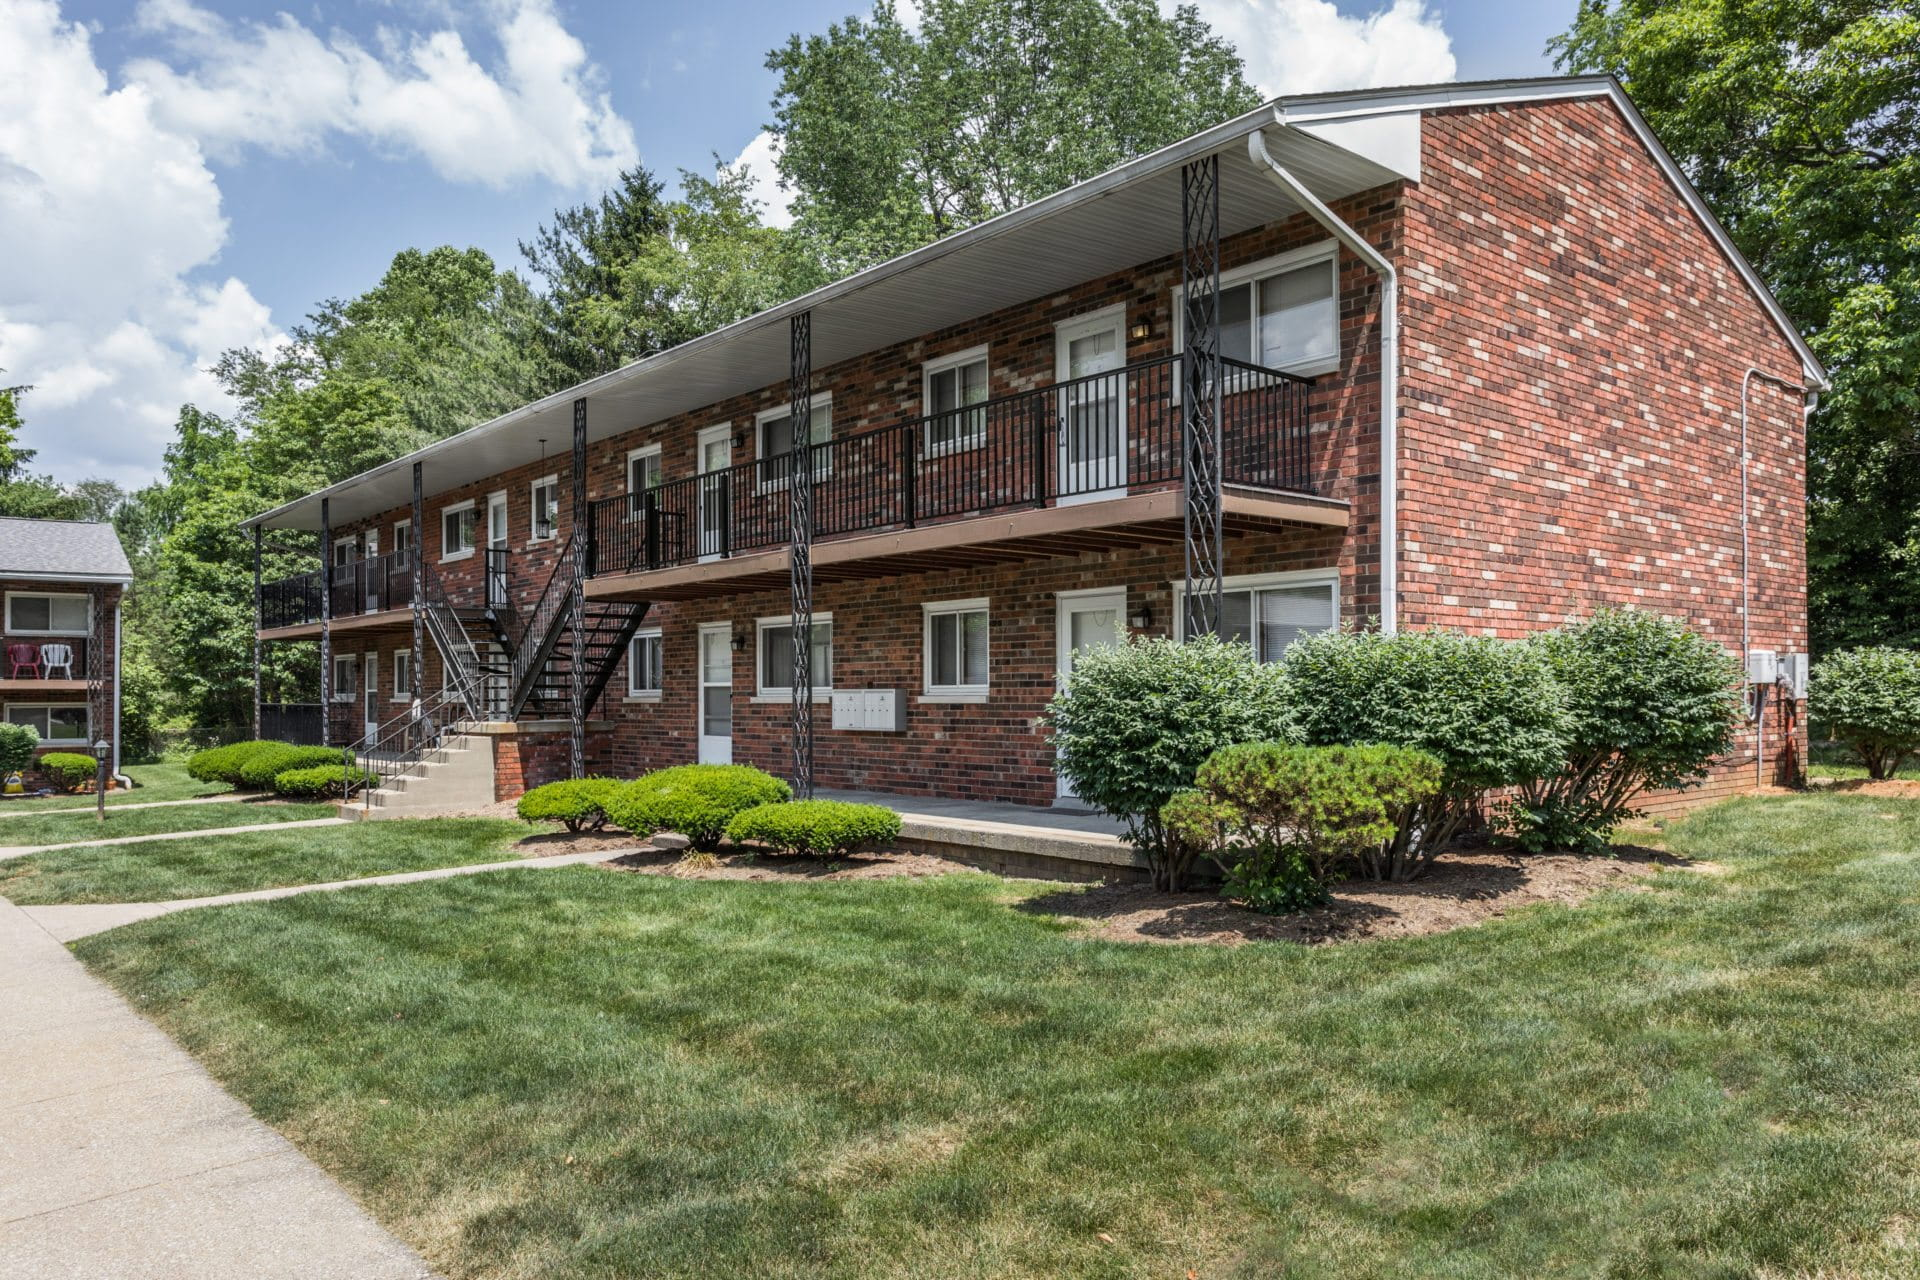 2 Bedroom Apartments In Champaign Il Communities Regency Multifamily